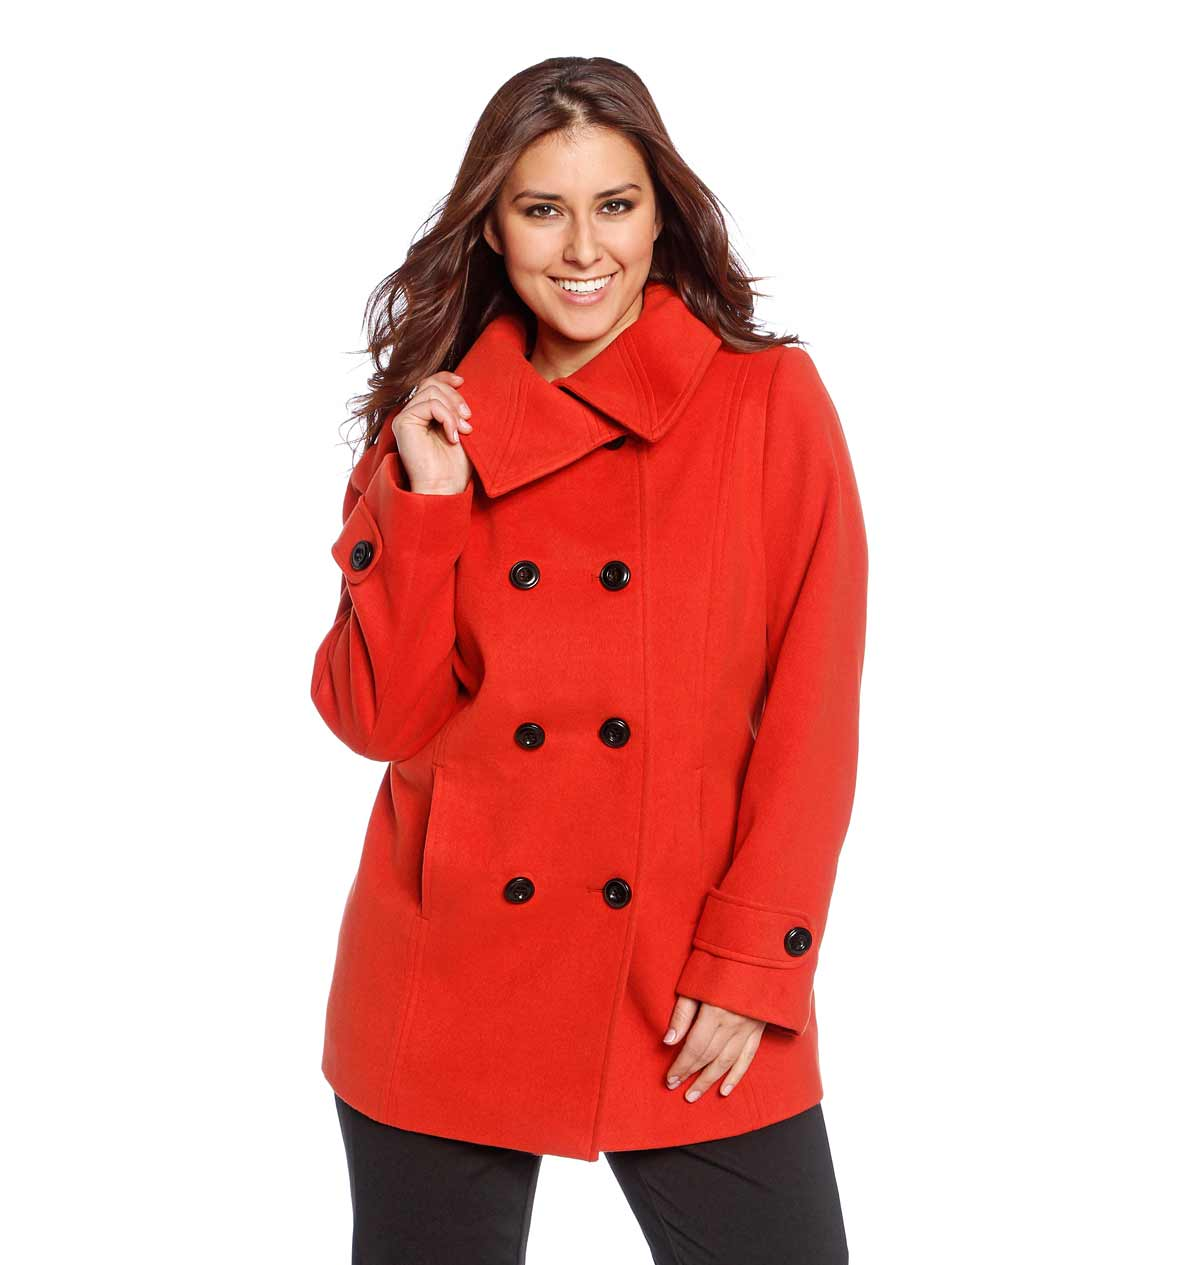 6563f0060ff Soldes vetements grande taille femme taille 46-48 hiver 2013   Tenue ...